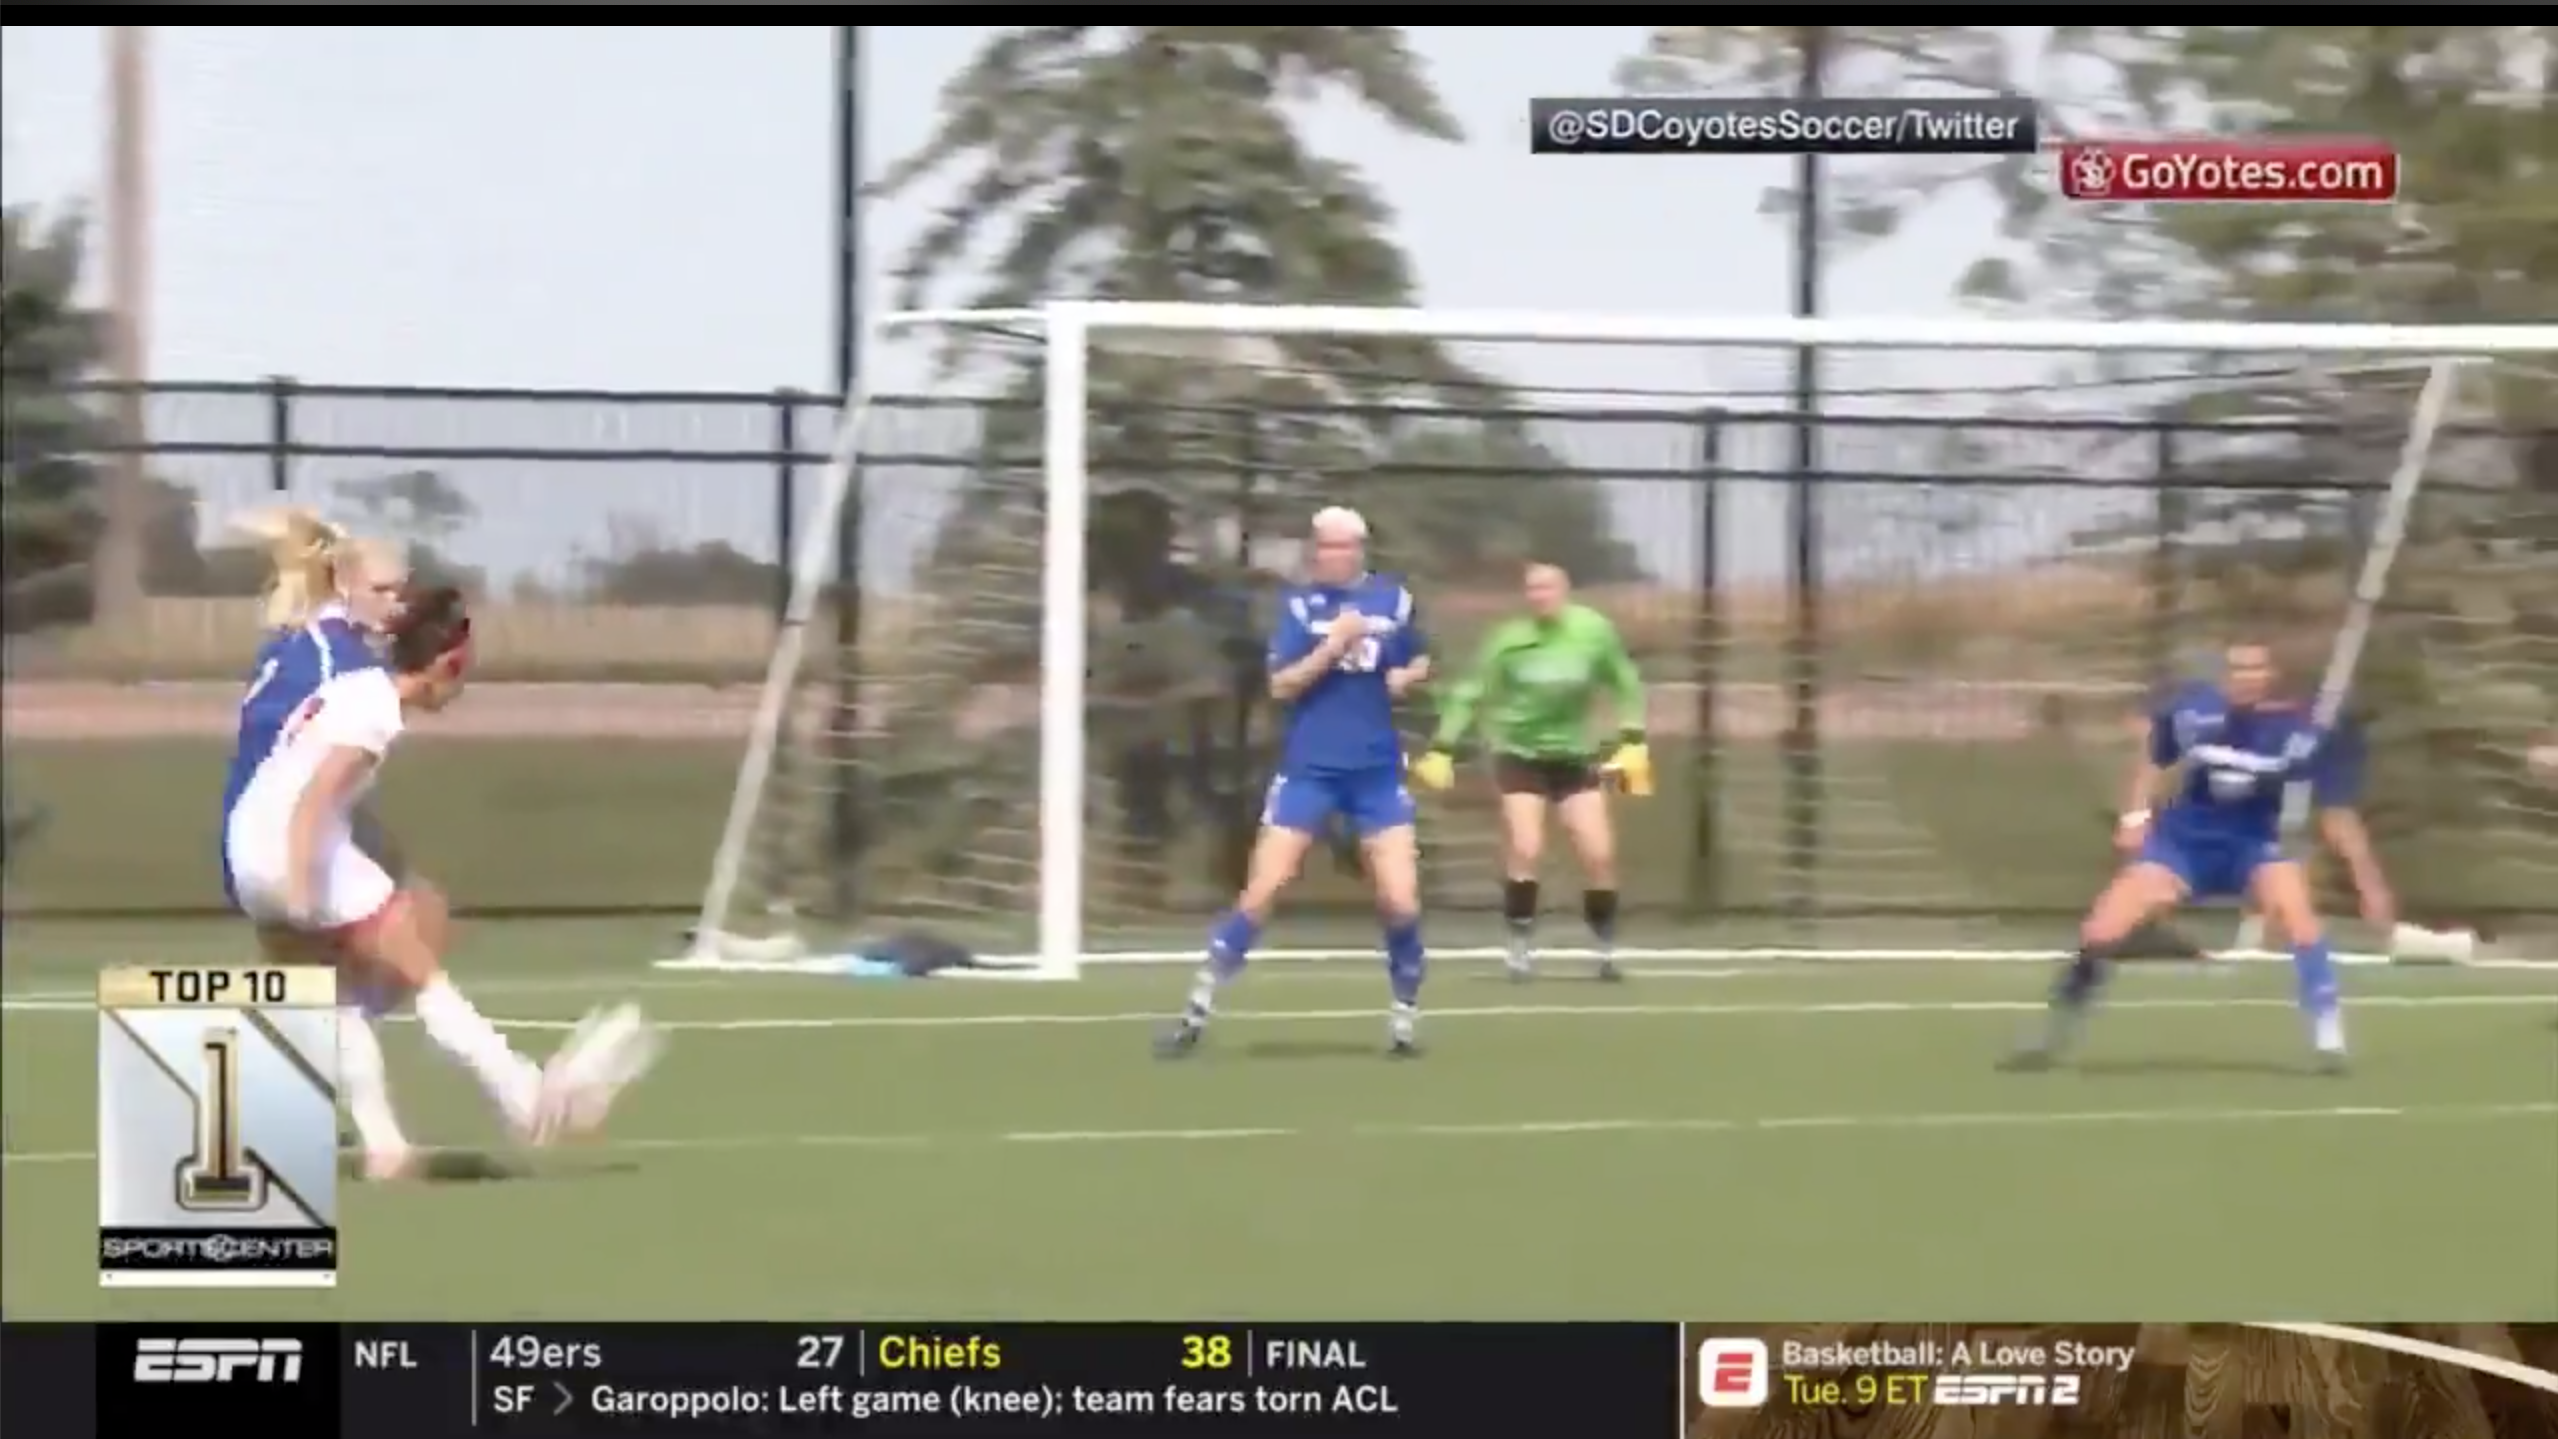 USD freshman Joana Zanin made SportsCenter on Sunday with her ridiculous game-tying goal against UMKC.